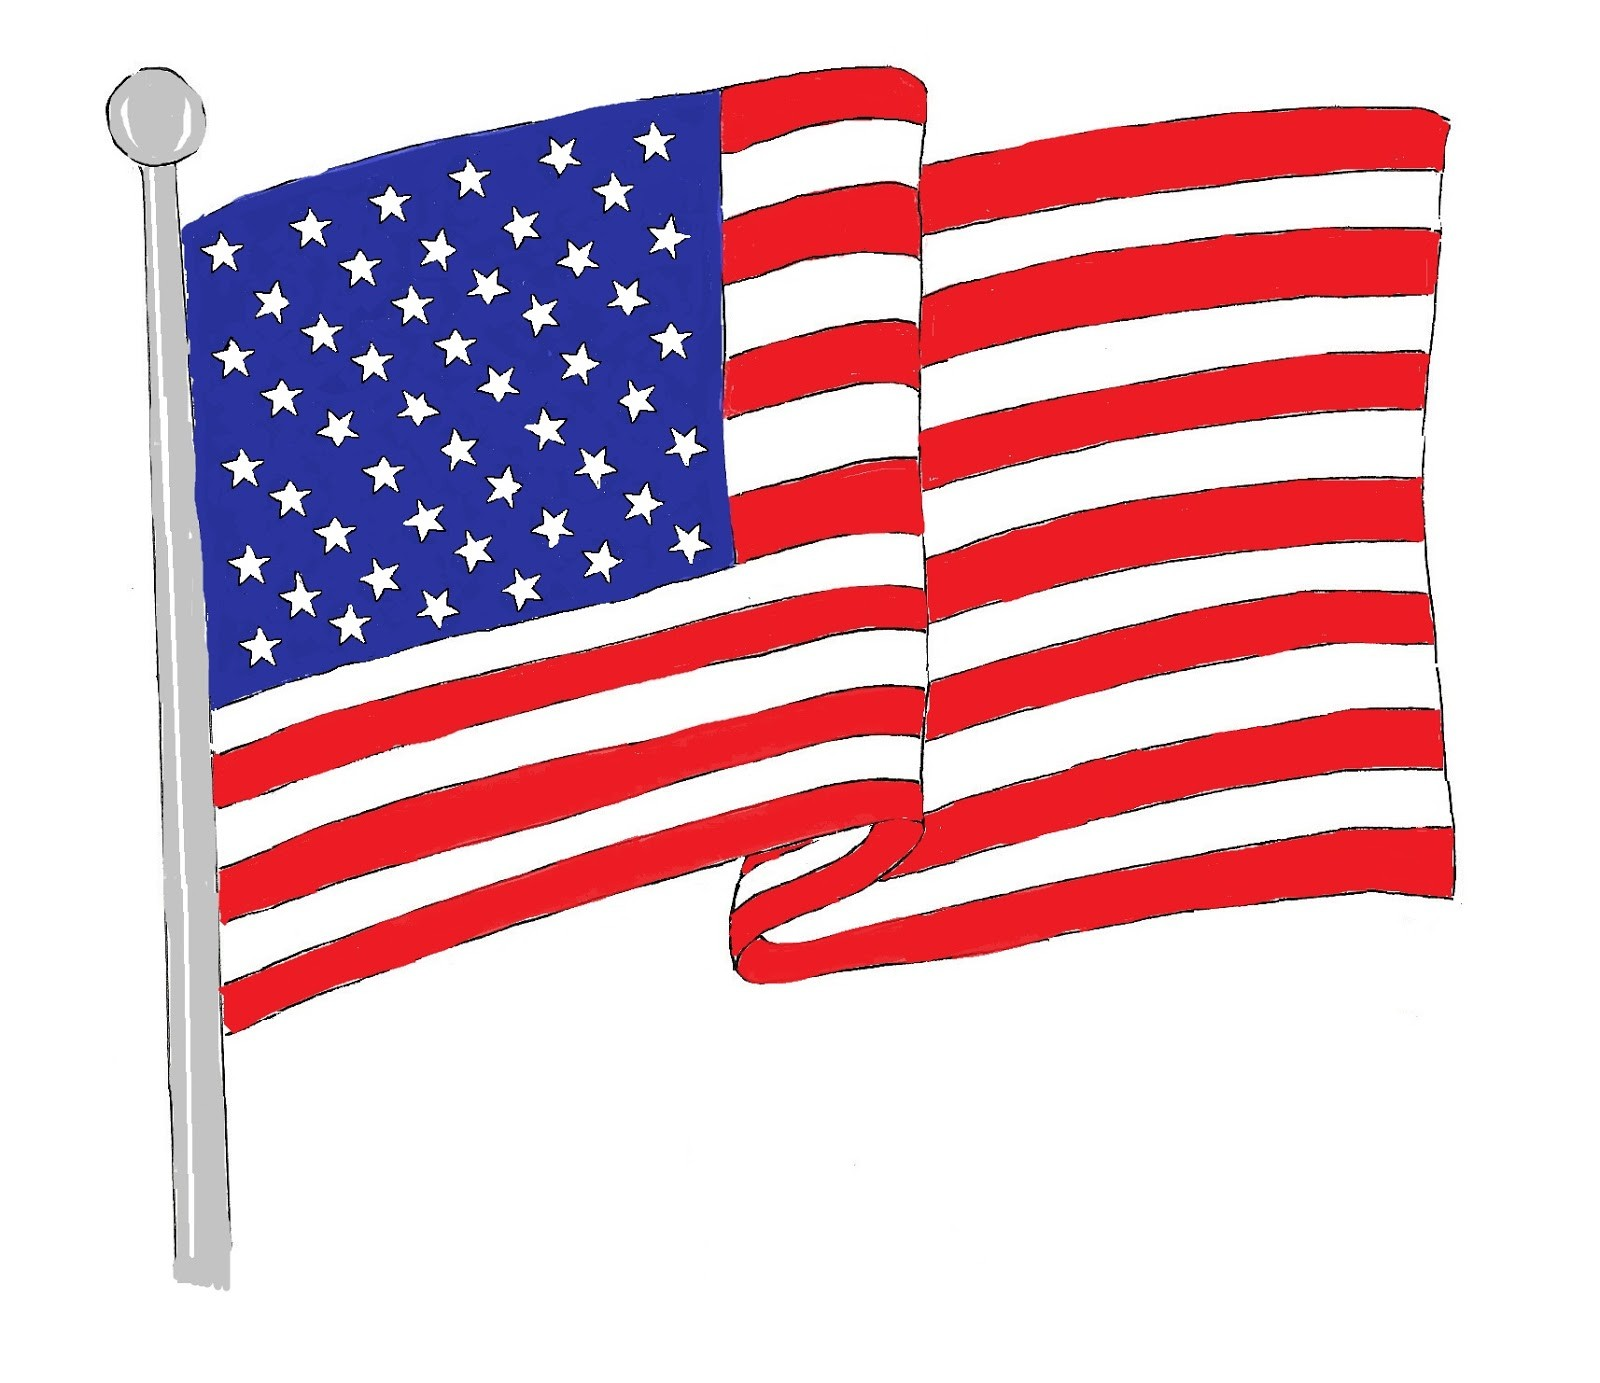 1600x1383 Clip Art United States Outline Images On Page 0 Yanhe Clip Art